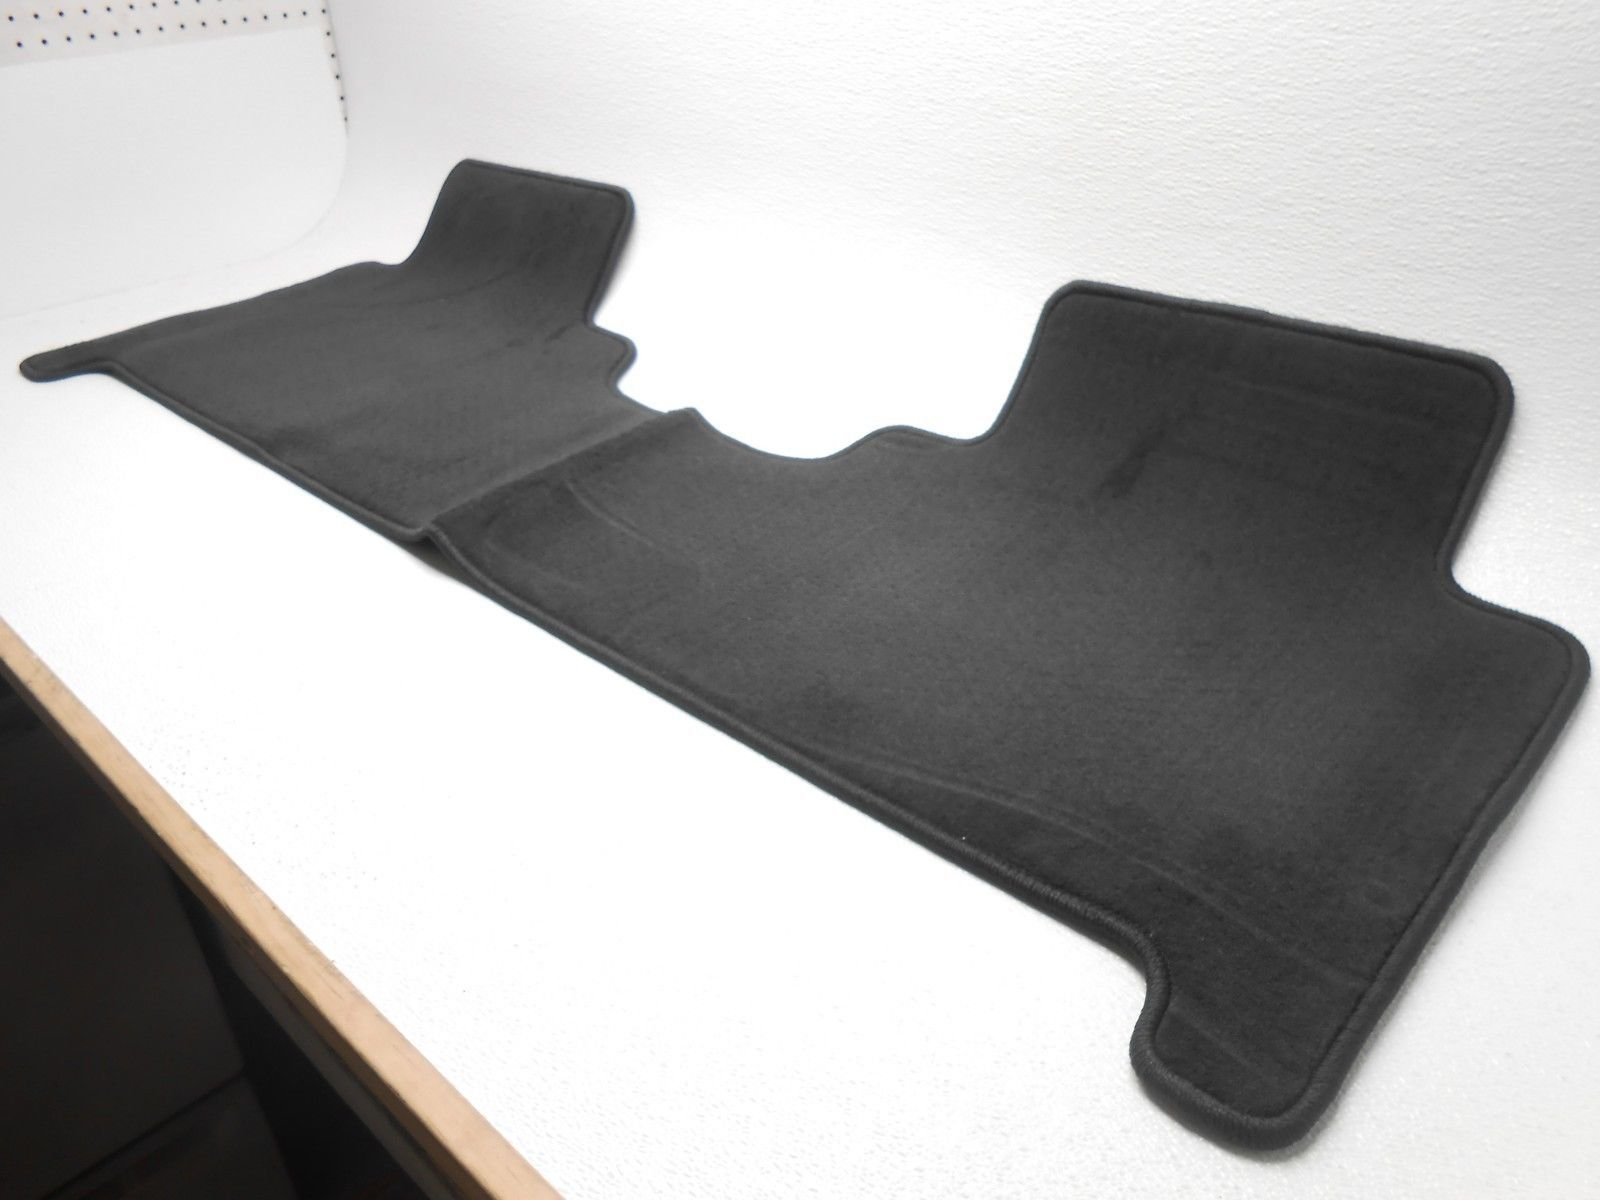 Floor mats kia - New Oem Kia Borrego Floor Mats 2009 2011 Black Very Nice